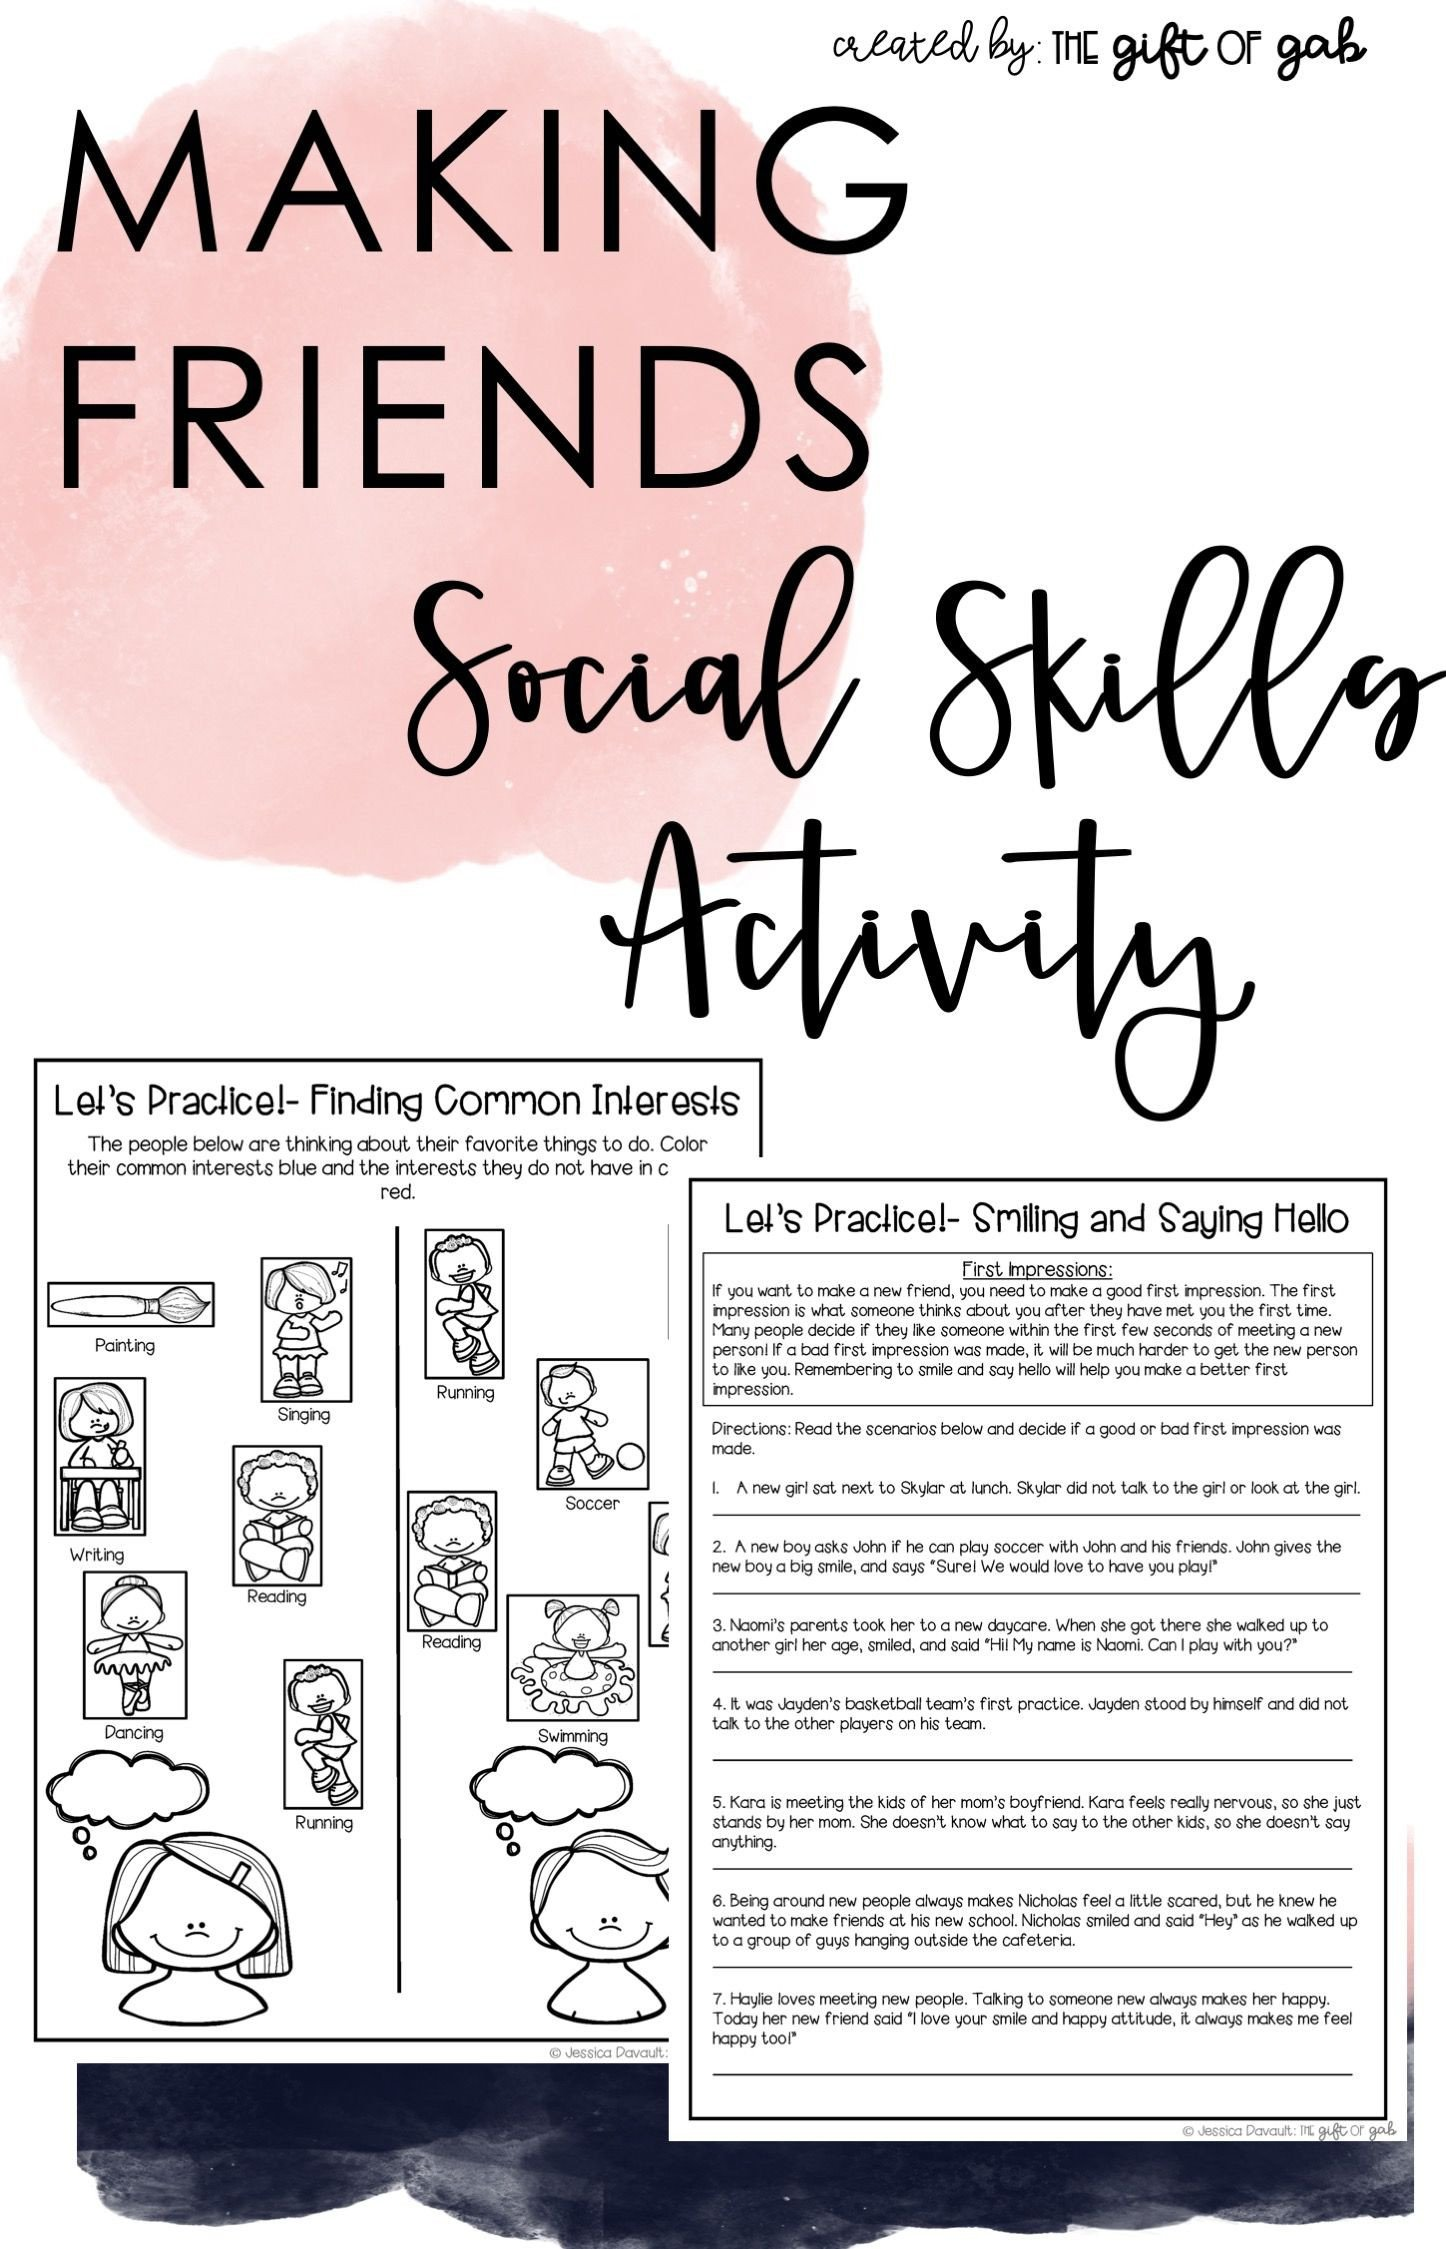 Social Skills Making Friends Worksheets Making Friends social Skills Activities for Kids In 2020